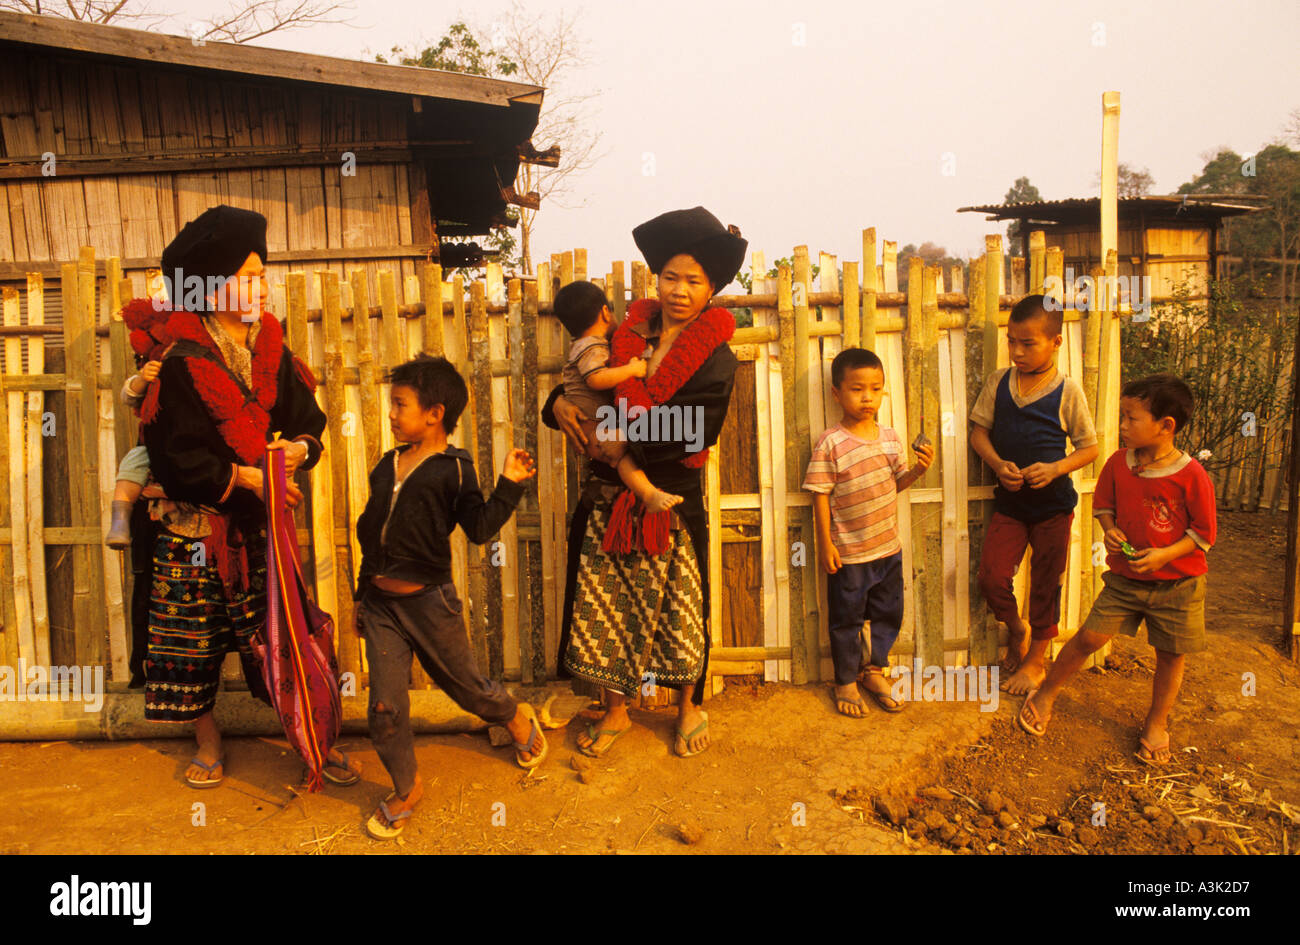 Mien Villagers Northern Thailand Women In Traditional Costume And Stock Photo Alamy